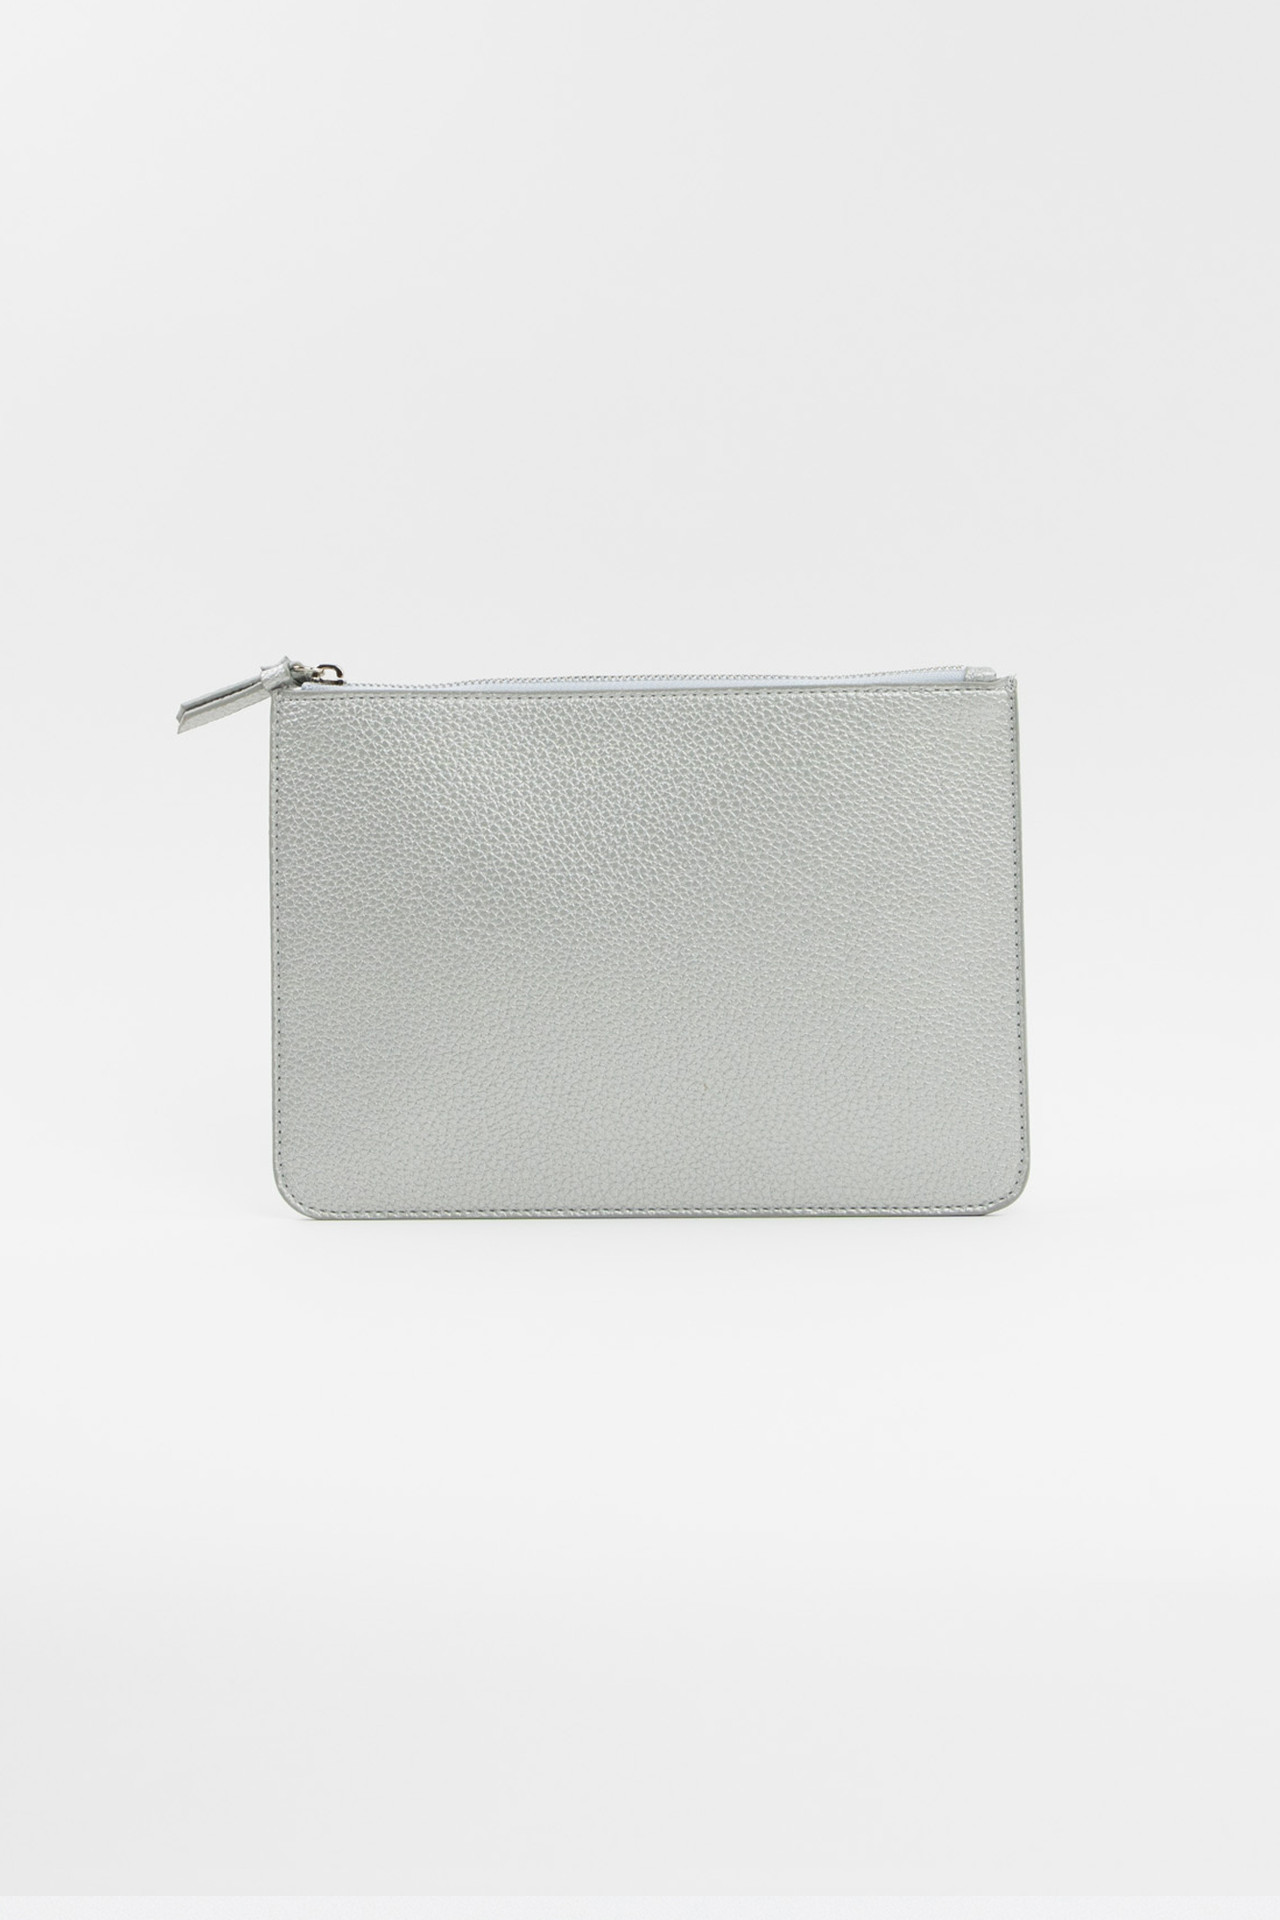 Silver Vegan Leather Clutch